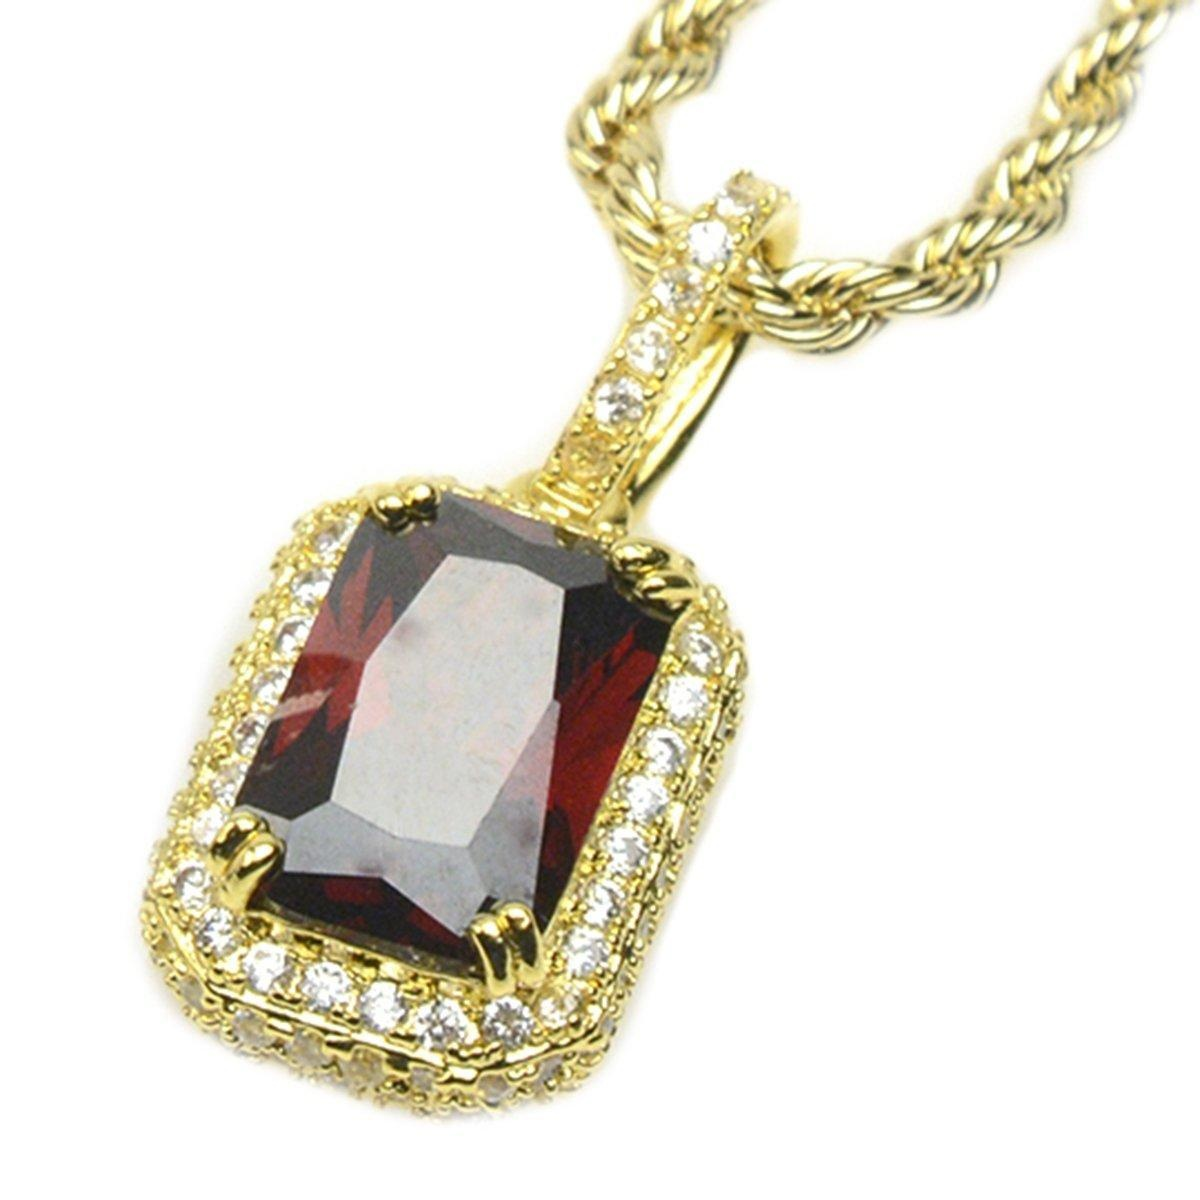 Online store mens hip hop luxury iced out 14kt gold plated micro mens hip hop luxury iced out 14kt gold plated micro red ruby pendant 24 mozeypictures Choice Image